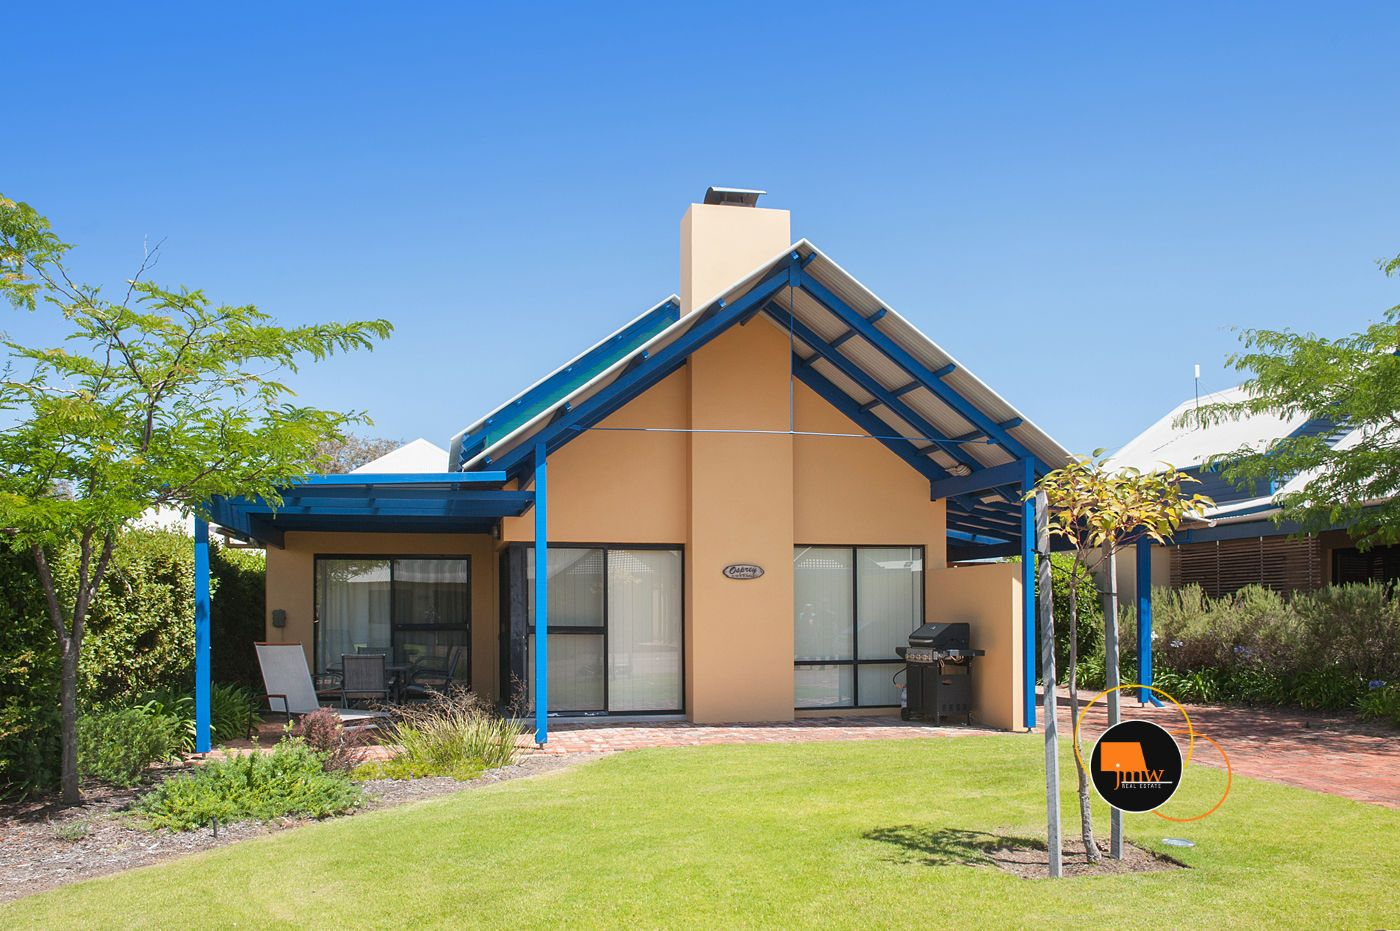 Unit 23 95 Gifford Road - Dunsborough Beach Cottages, Dunsborough WA 6281, Image 0